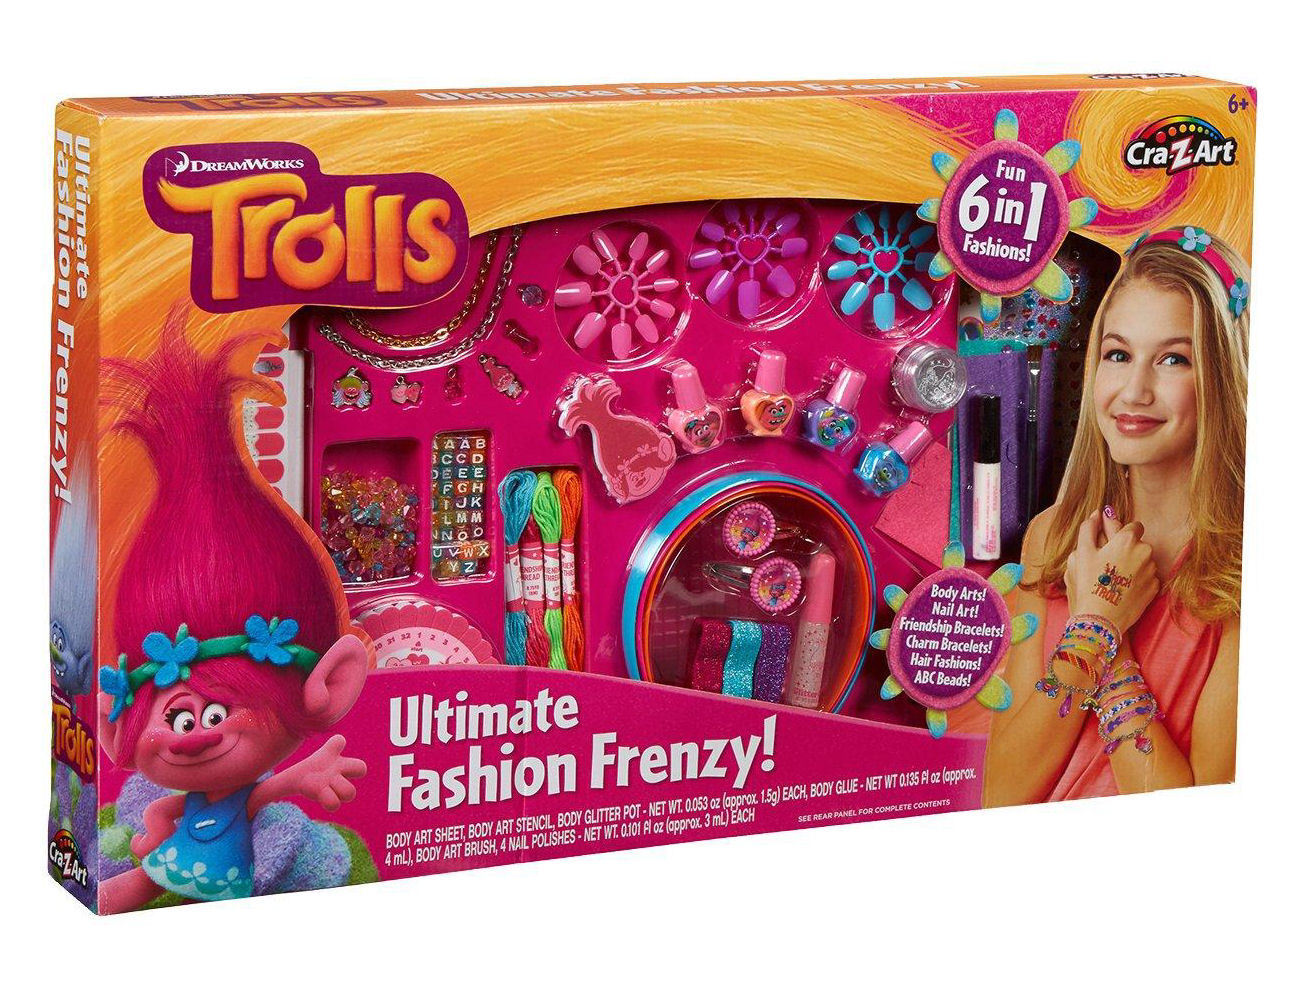 CraZArt Trolls 6 in 1 Ultimate Fashion Frenzy Set Jewellery Jewelry       res content global inflow inflowcomponent cancel